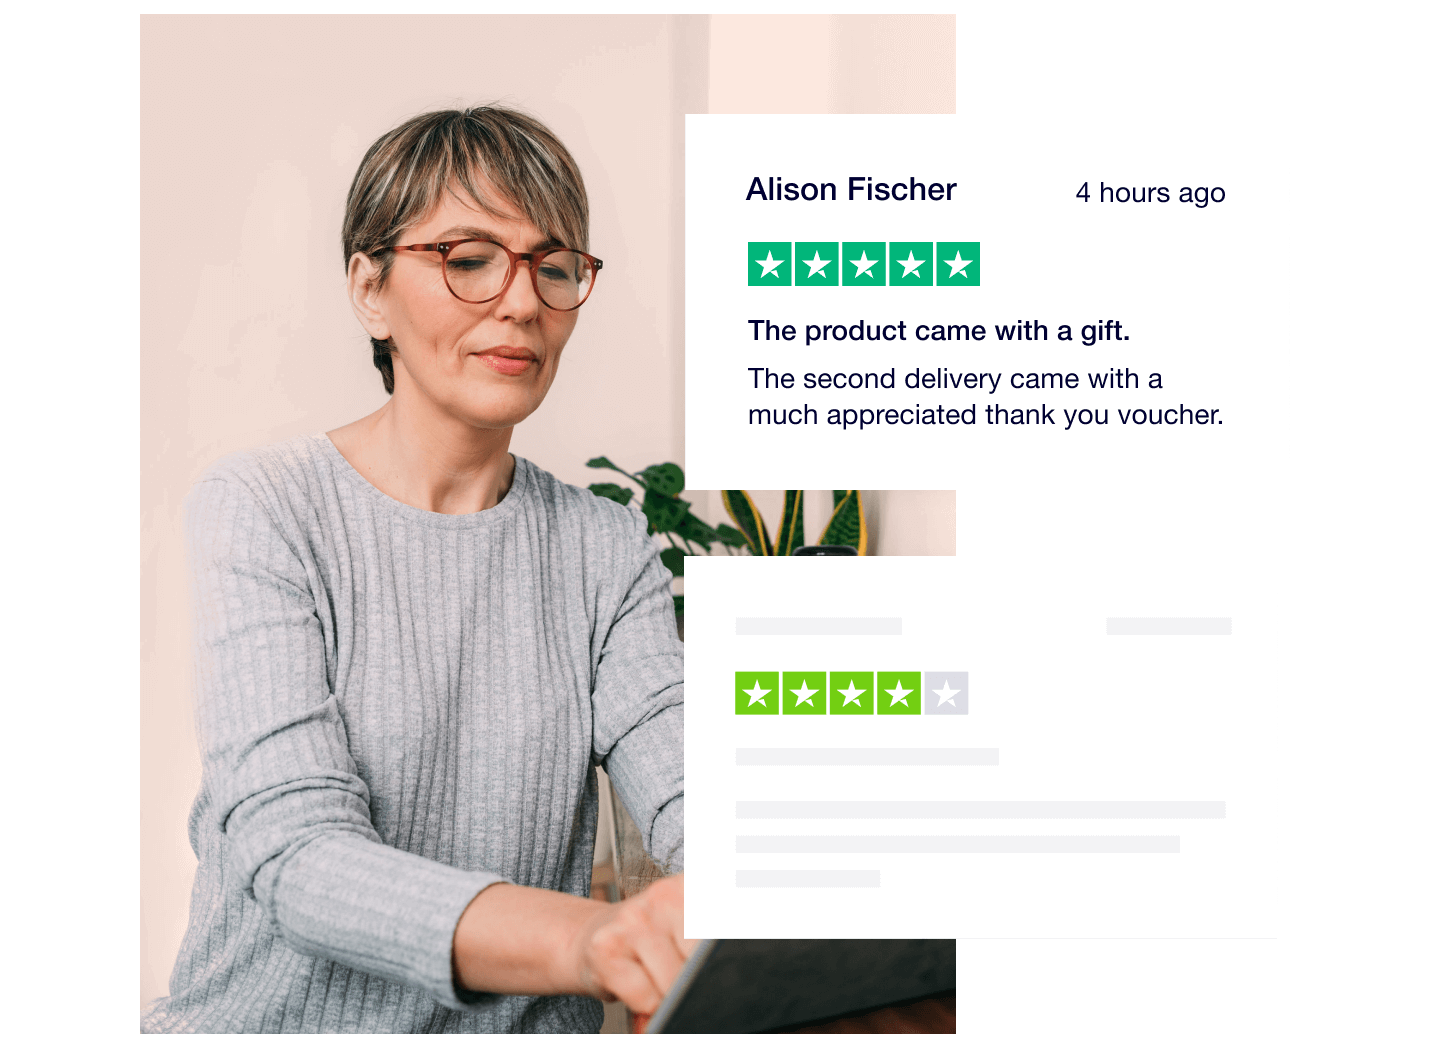 Photo of a woman with glasses in a grey sweater typing on a laptop. Trustpilot reviews in foreground.